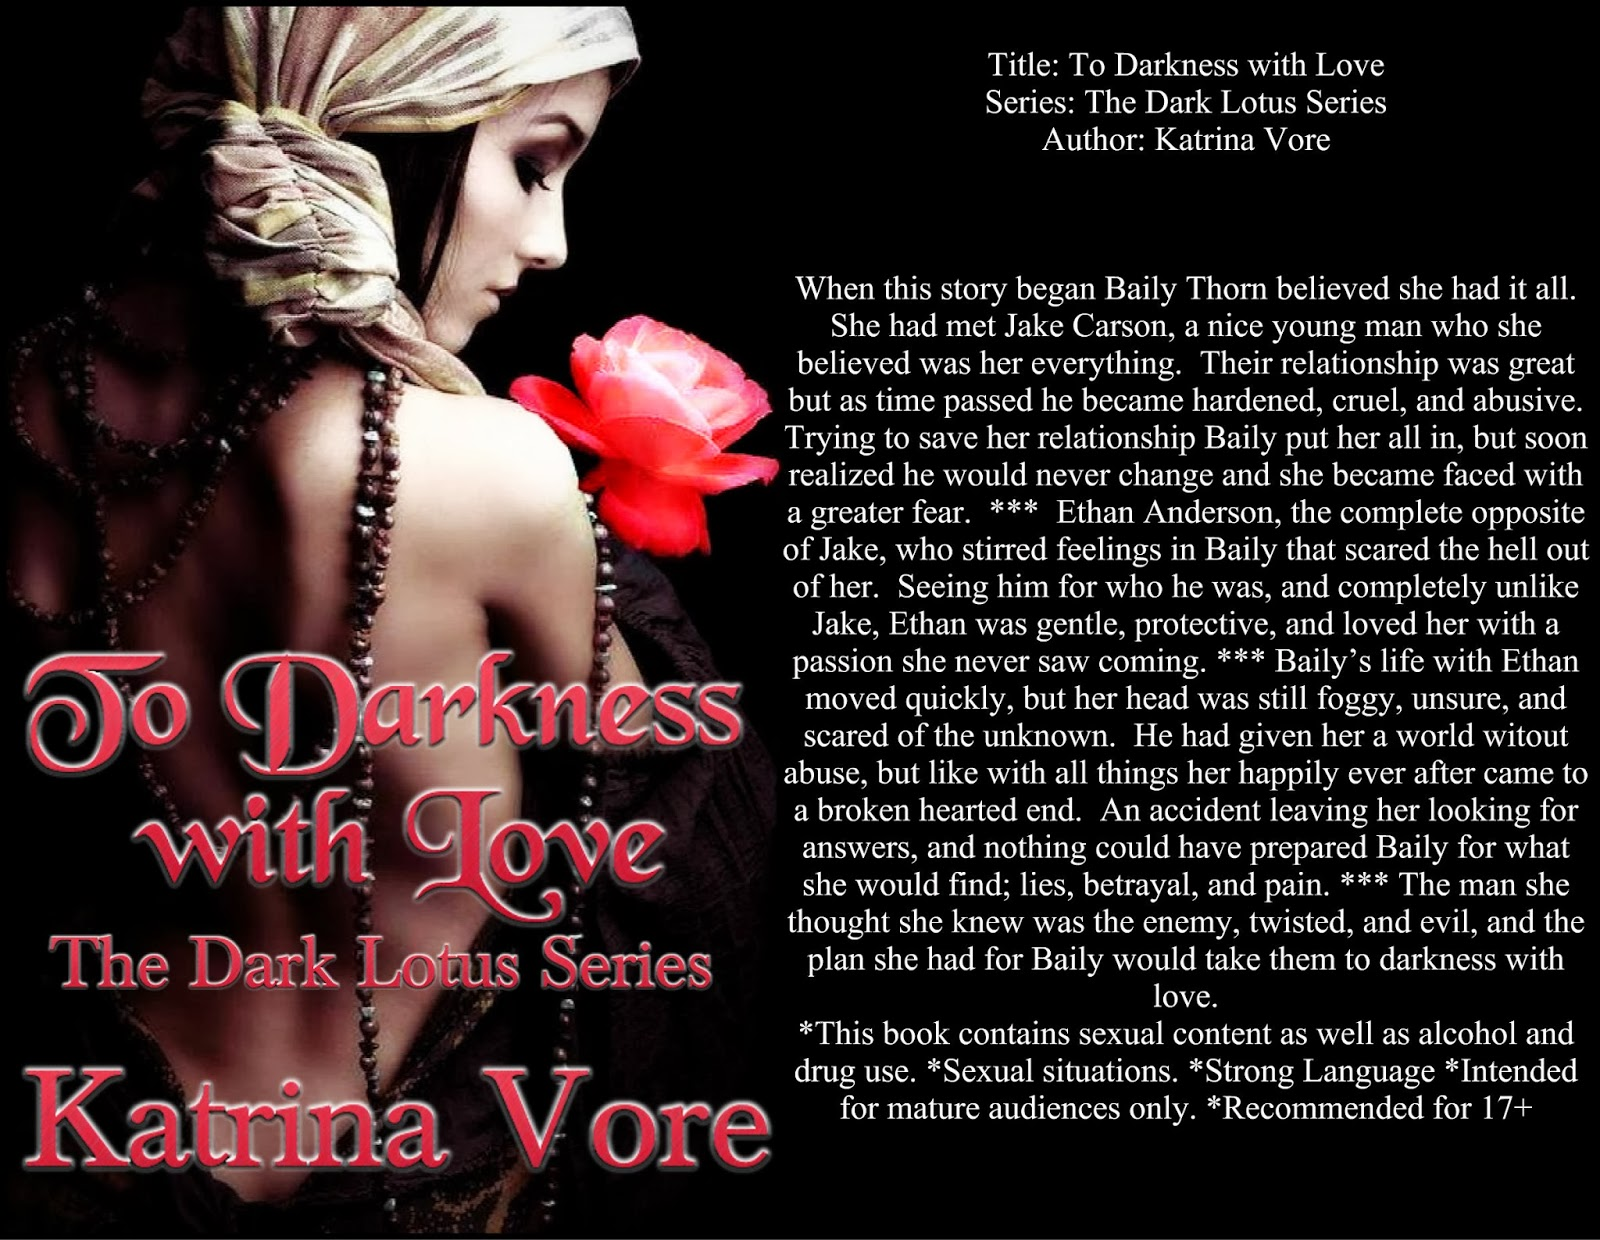 book cover art and synopses for To Darkness with Love by Katrina Vore